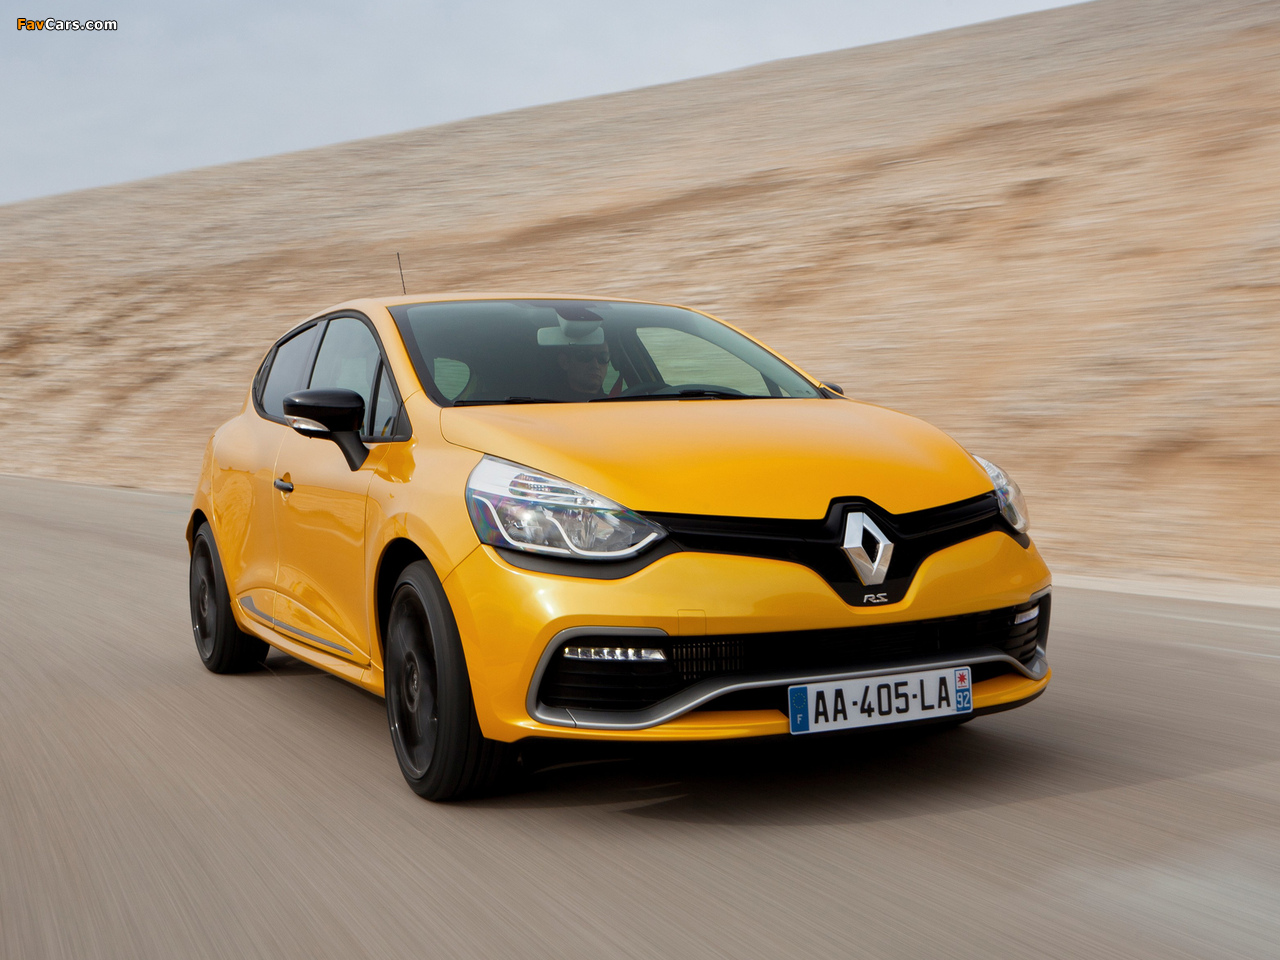 Pictures of Renault Clio R.S. 200 2013 (1280 x 960)